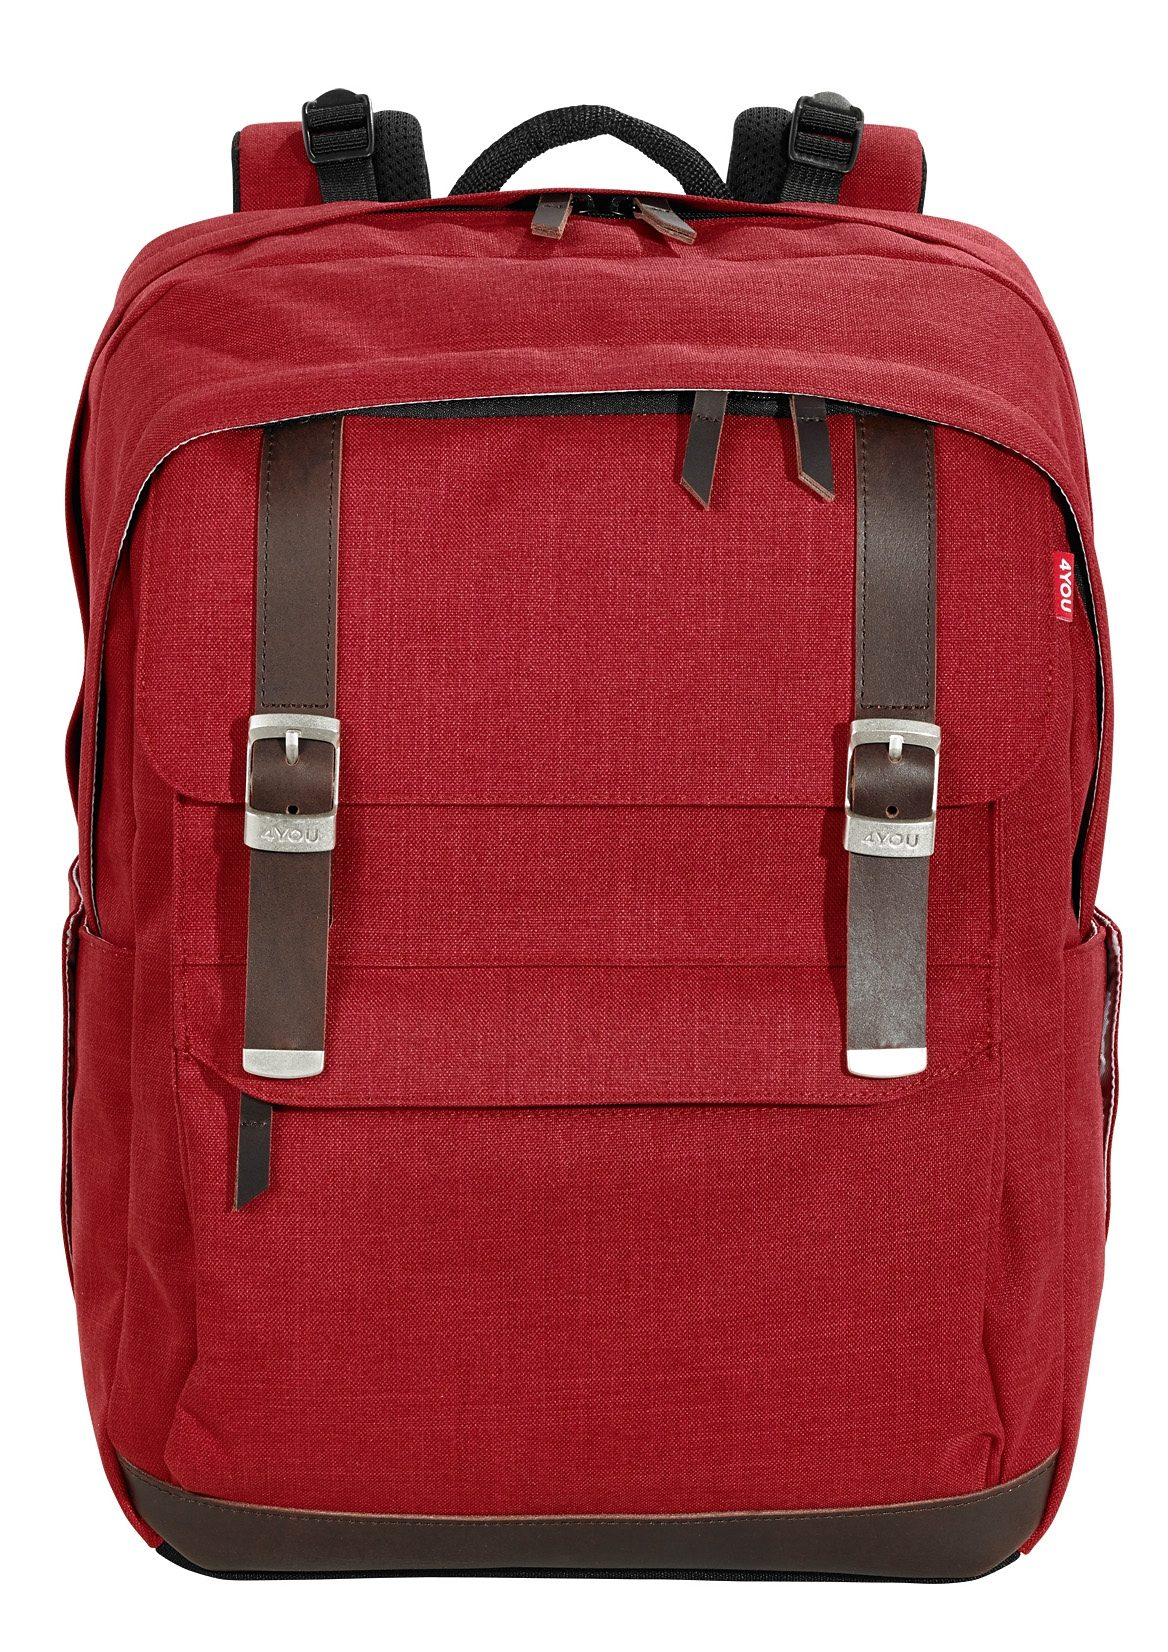 4YOU Schulrucksack, Soft Red, »Legend«